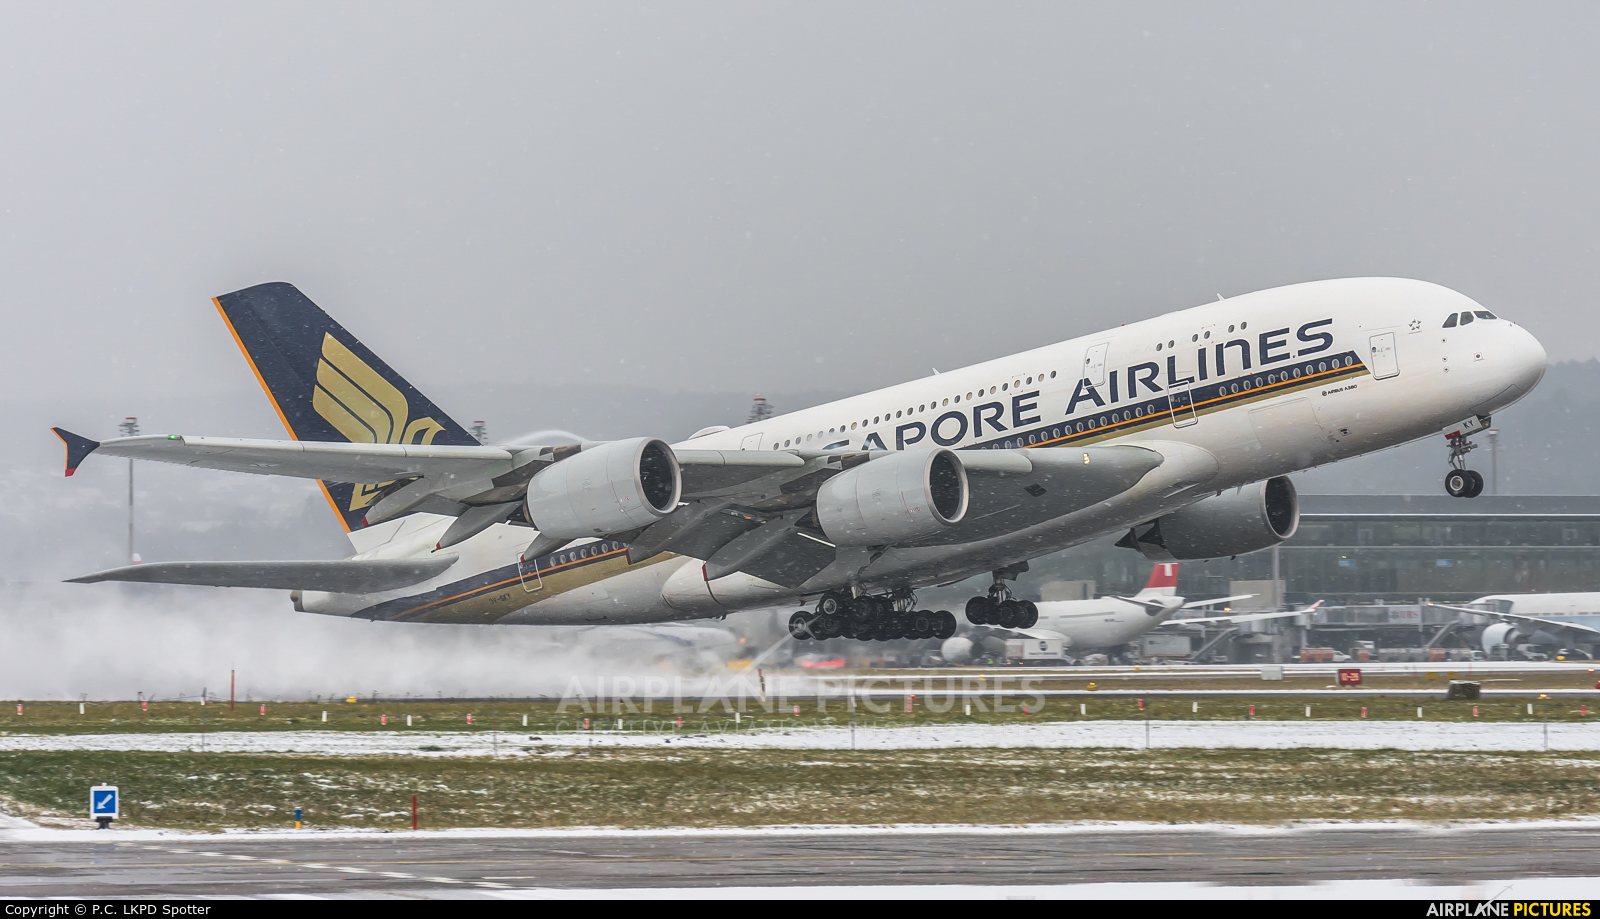 Singapore Airlines 9V-SKY aircraft at Zurich